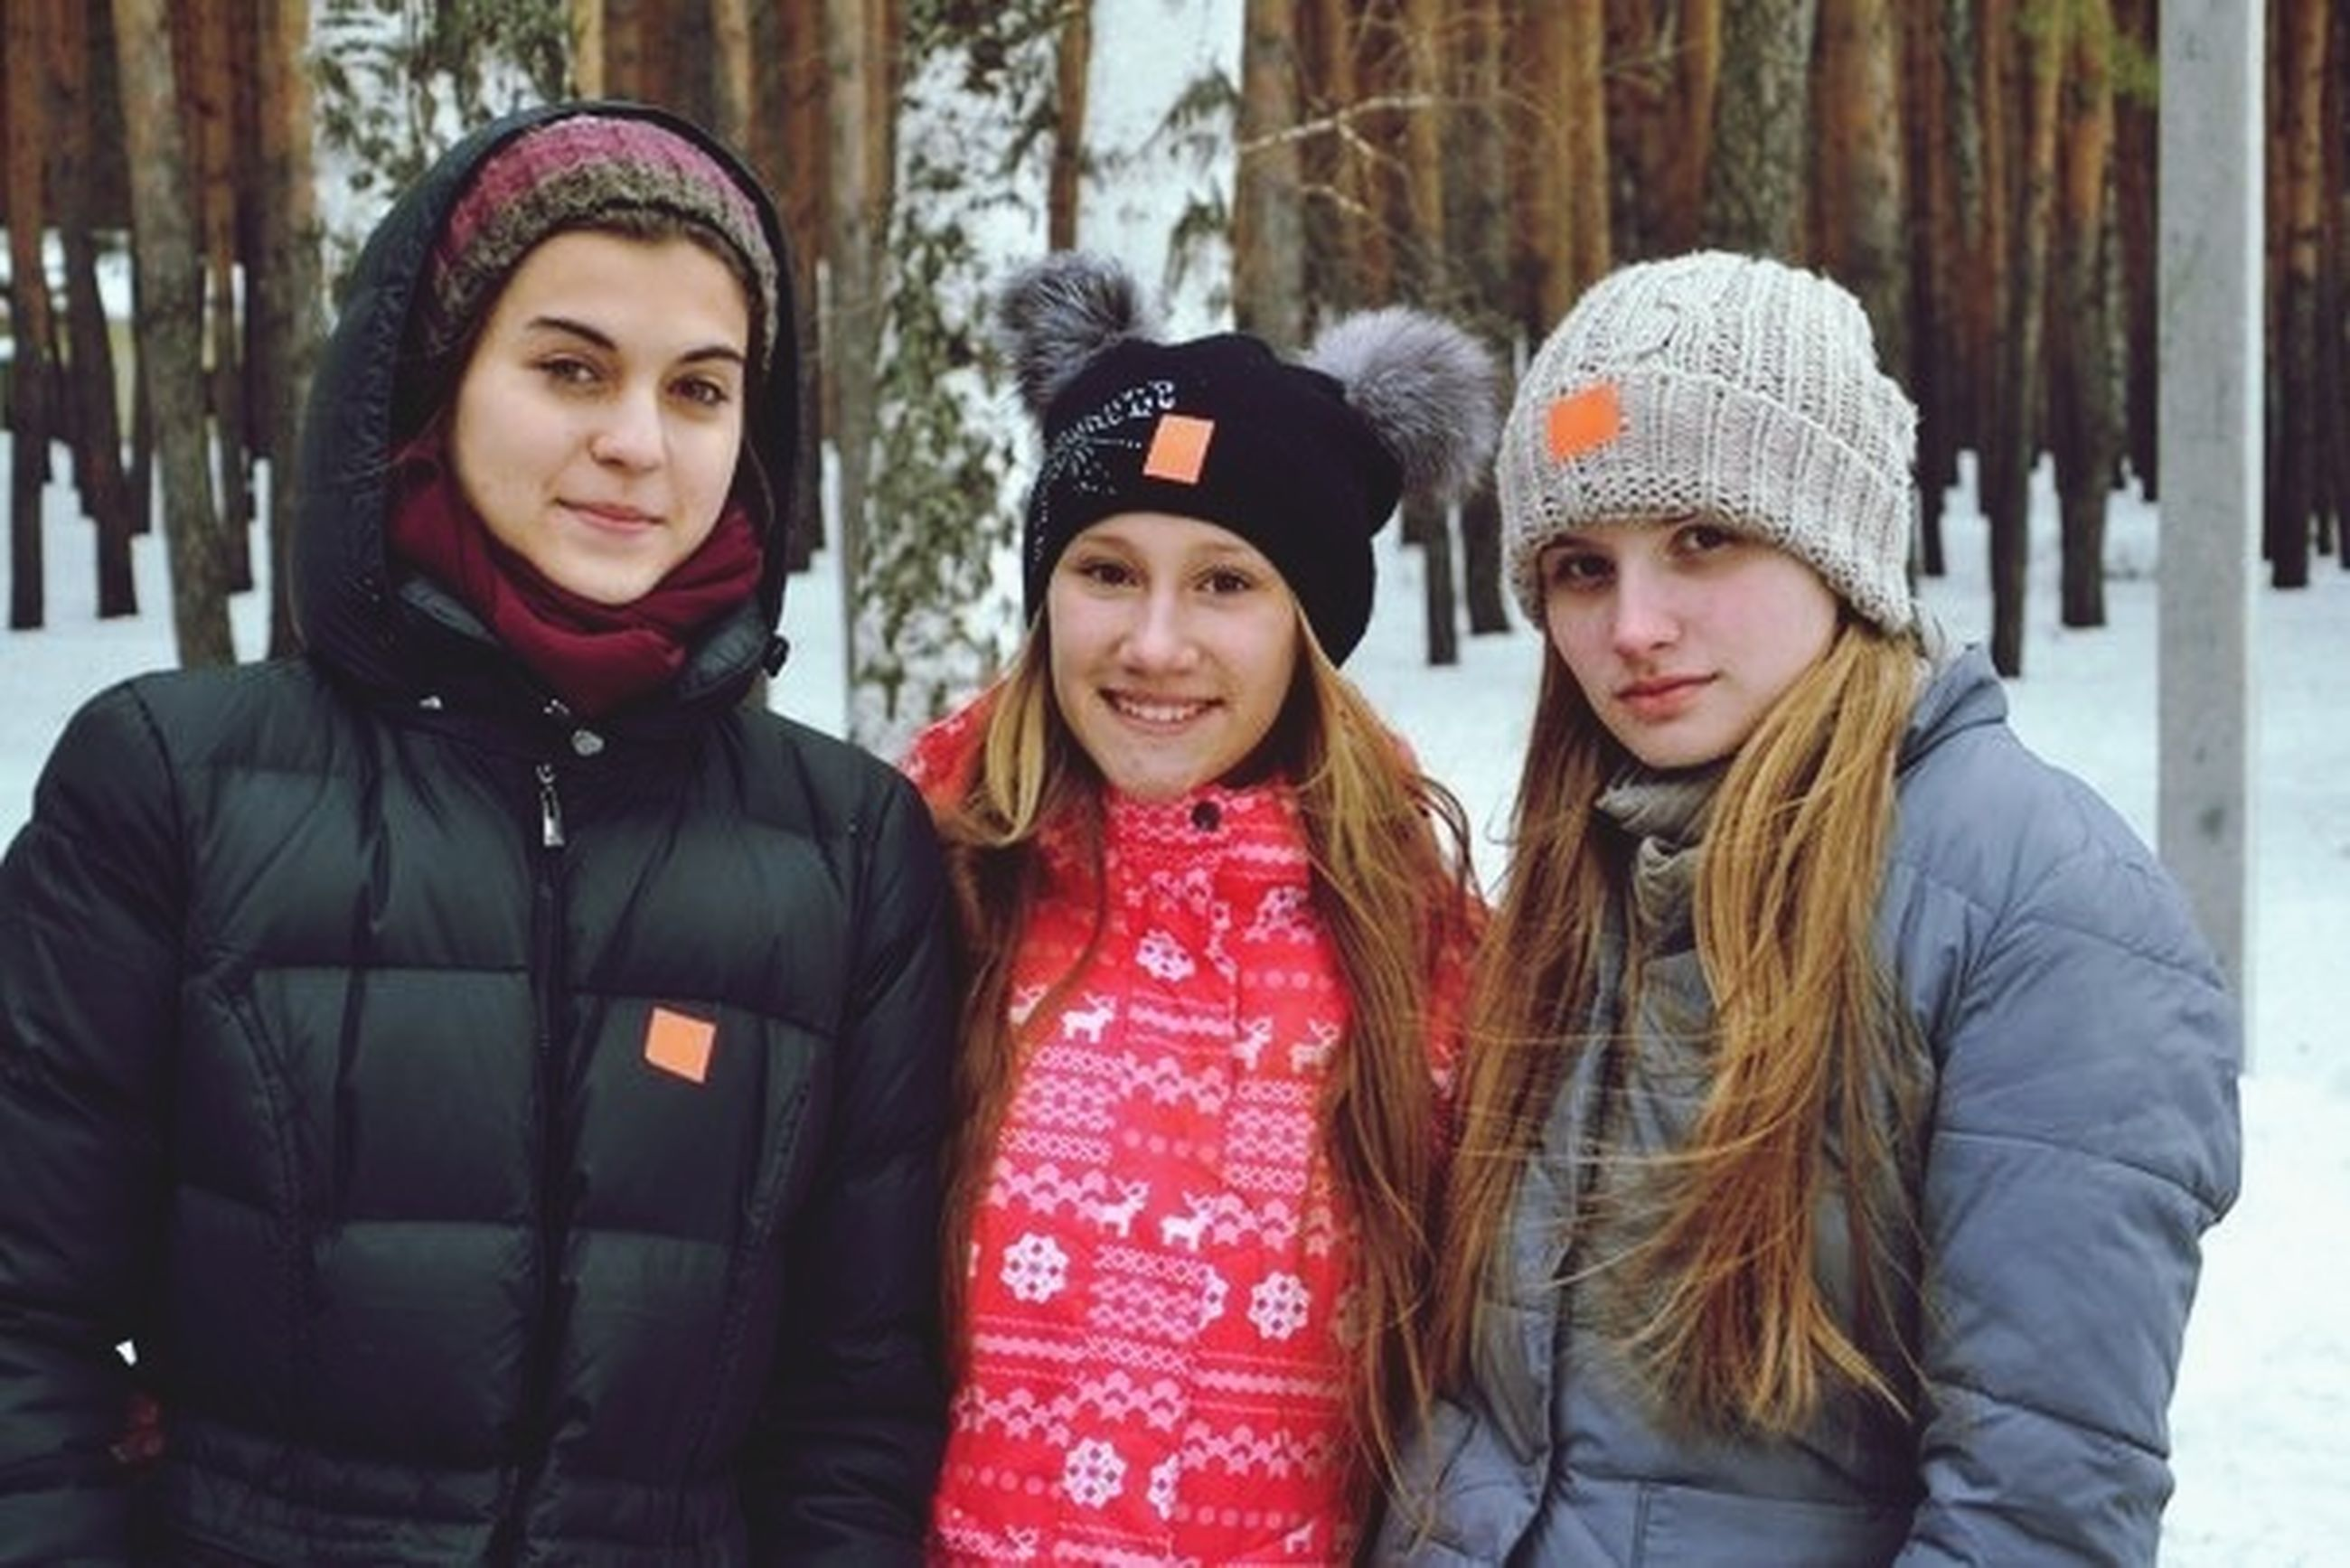 togetherness, lifestyles, portrait, looking at camera, person, bonding, leisure activity, smiling, front view, casual clothing, happiness, love, warm clothing, young adult, friendship, winter, young women, standing